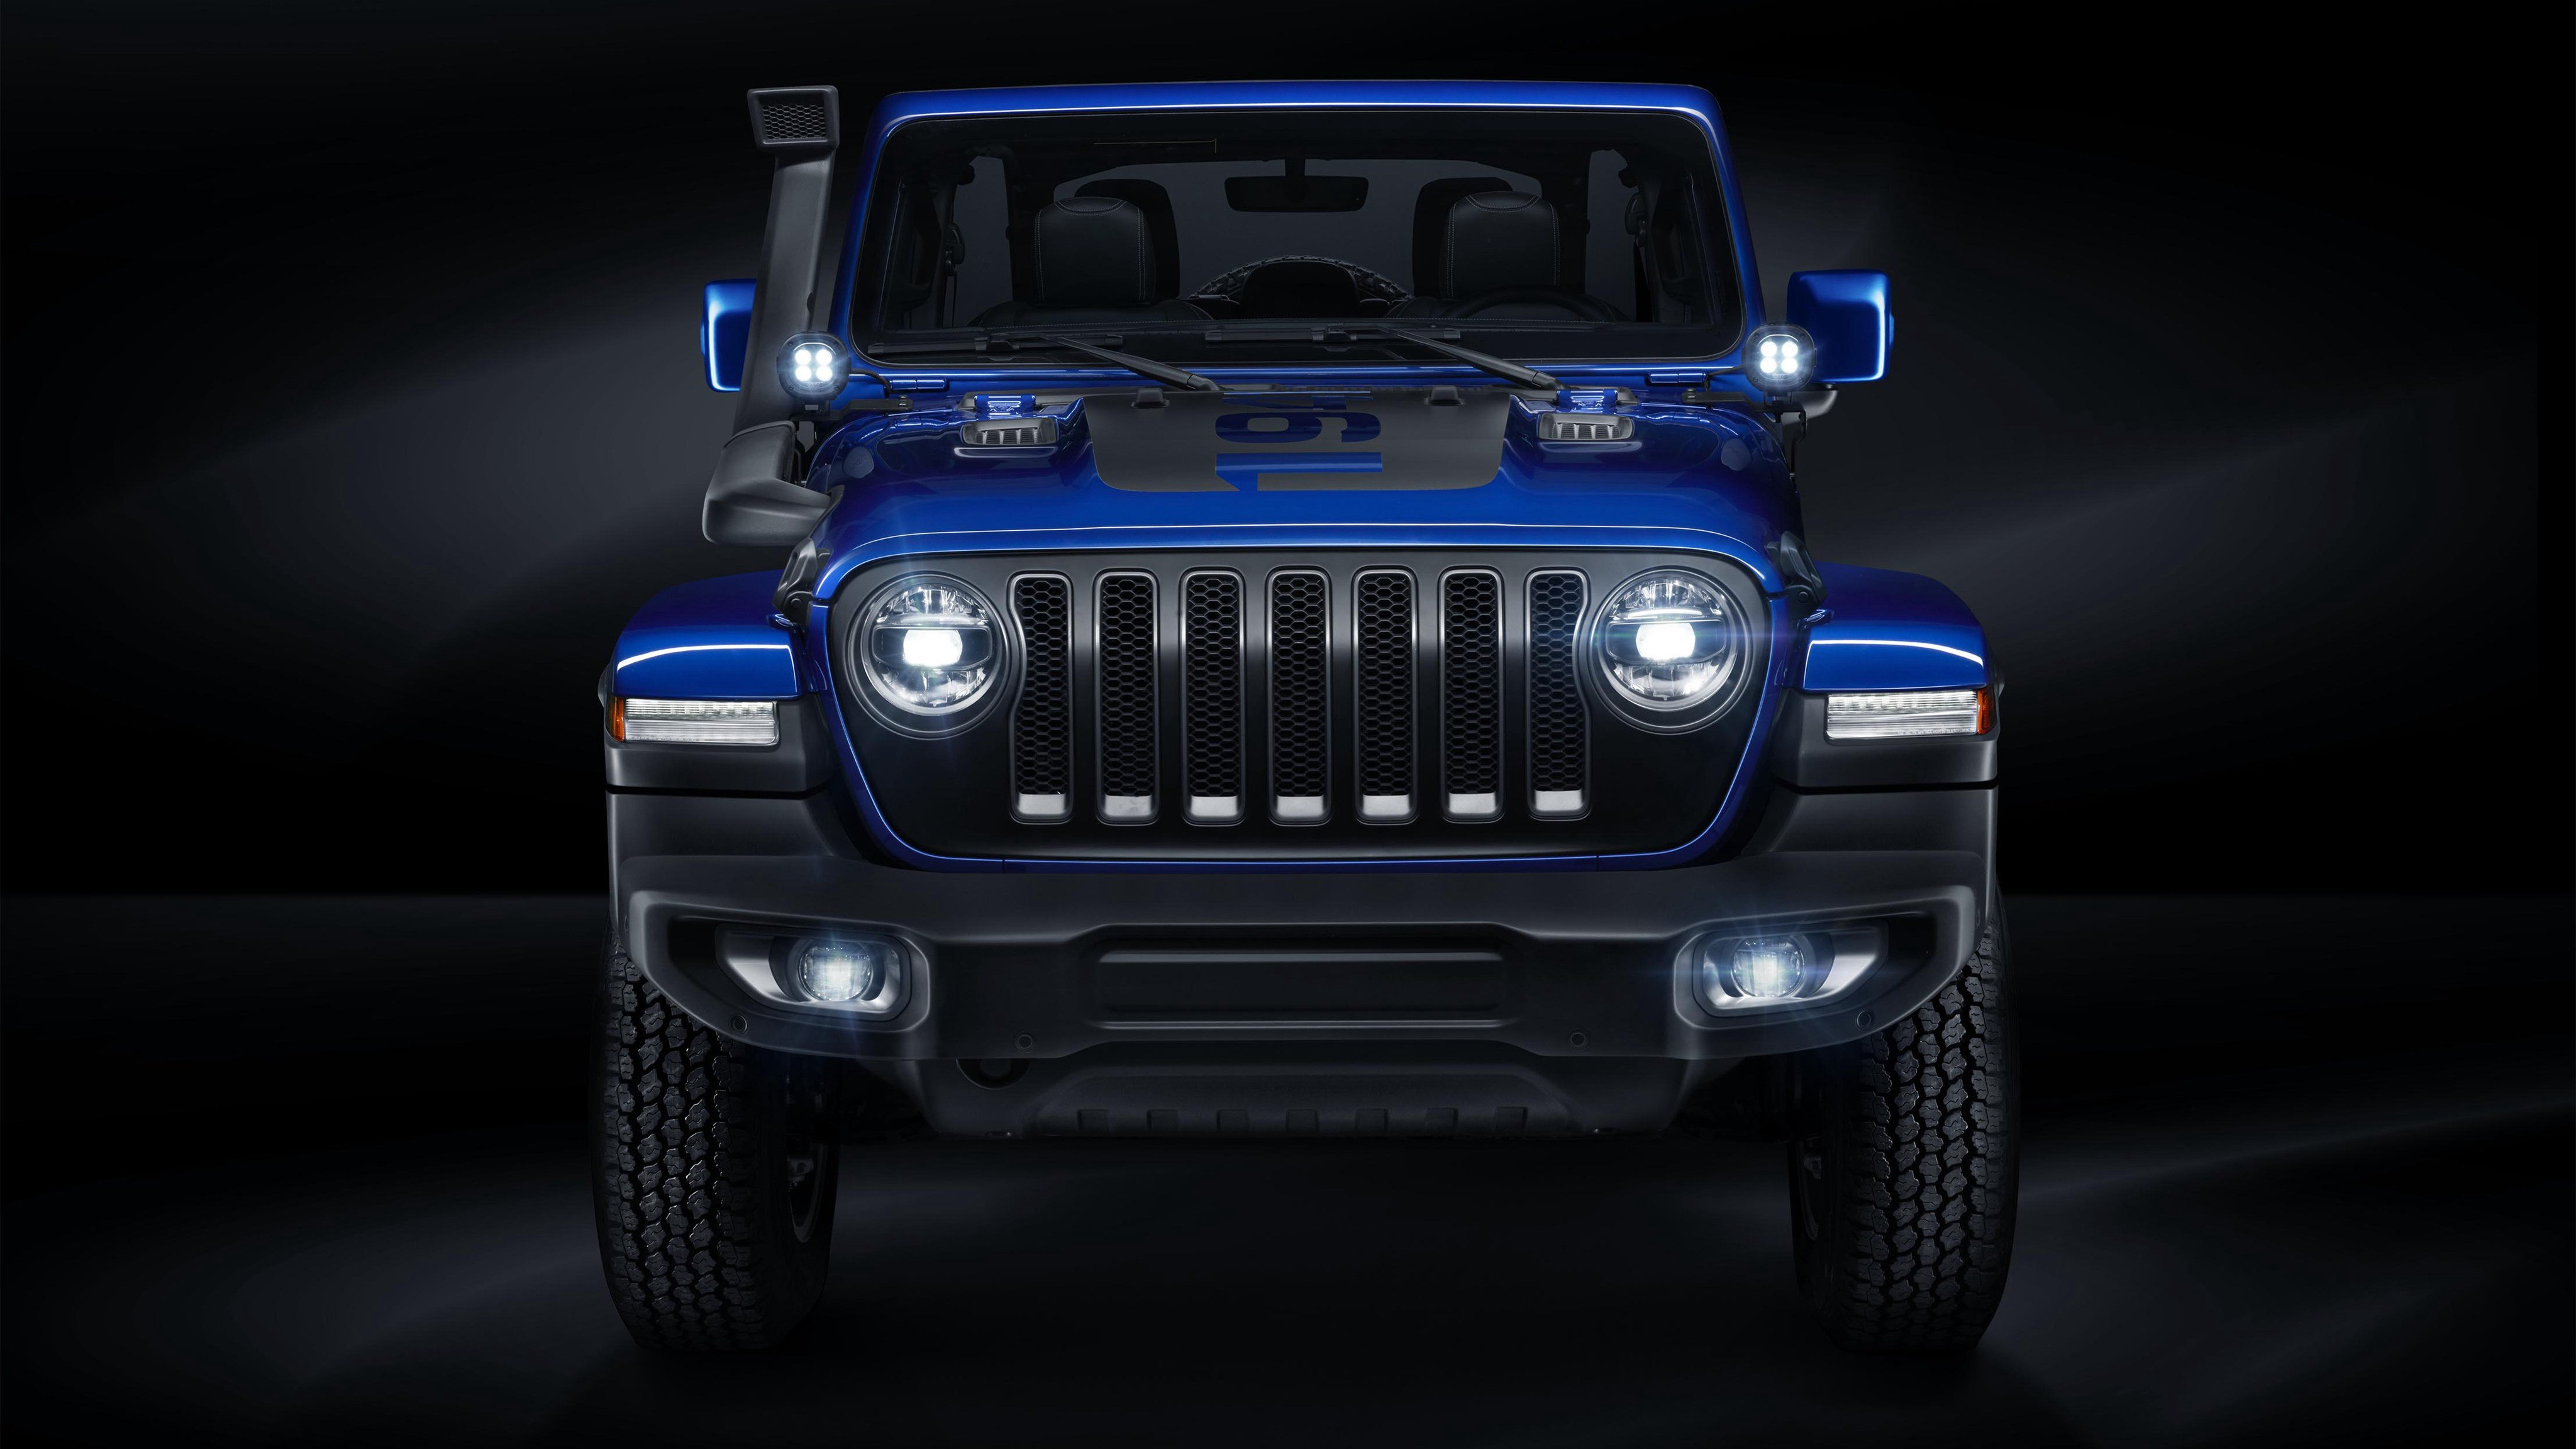 New 2018 Jeep Wrangler Unlimited Moparized 4K Wallpaper Hd On This Month